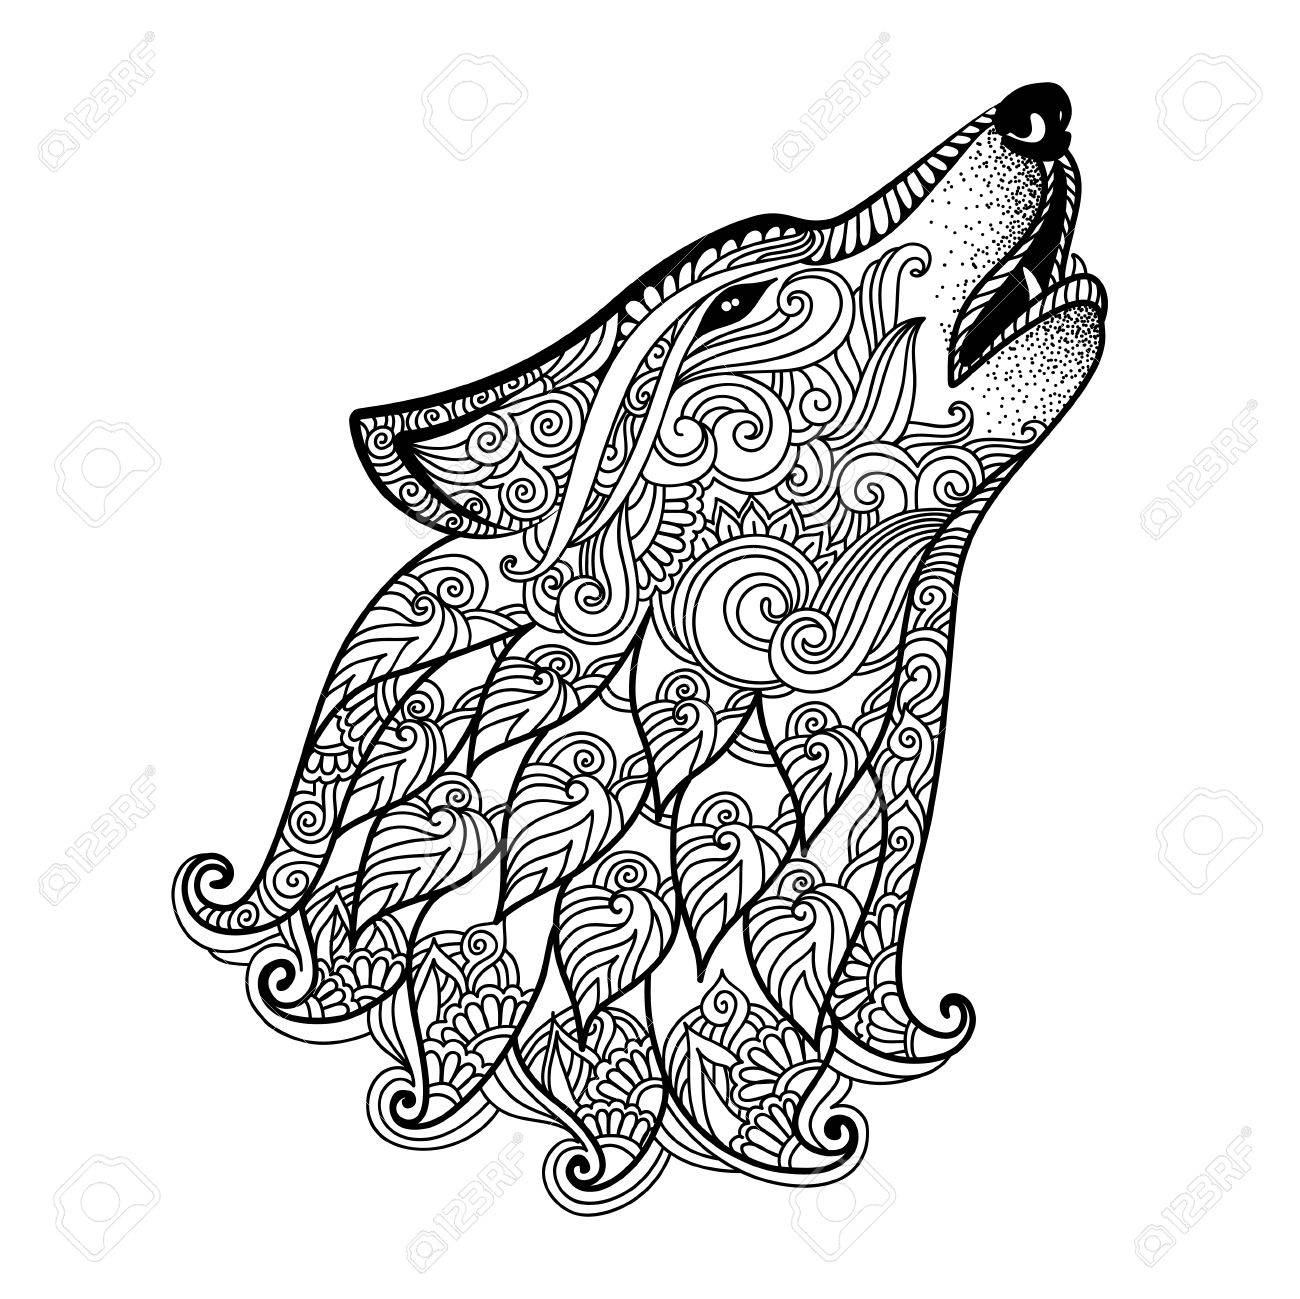 Hand drawn wolf side view with ethnic floral doodle pattern